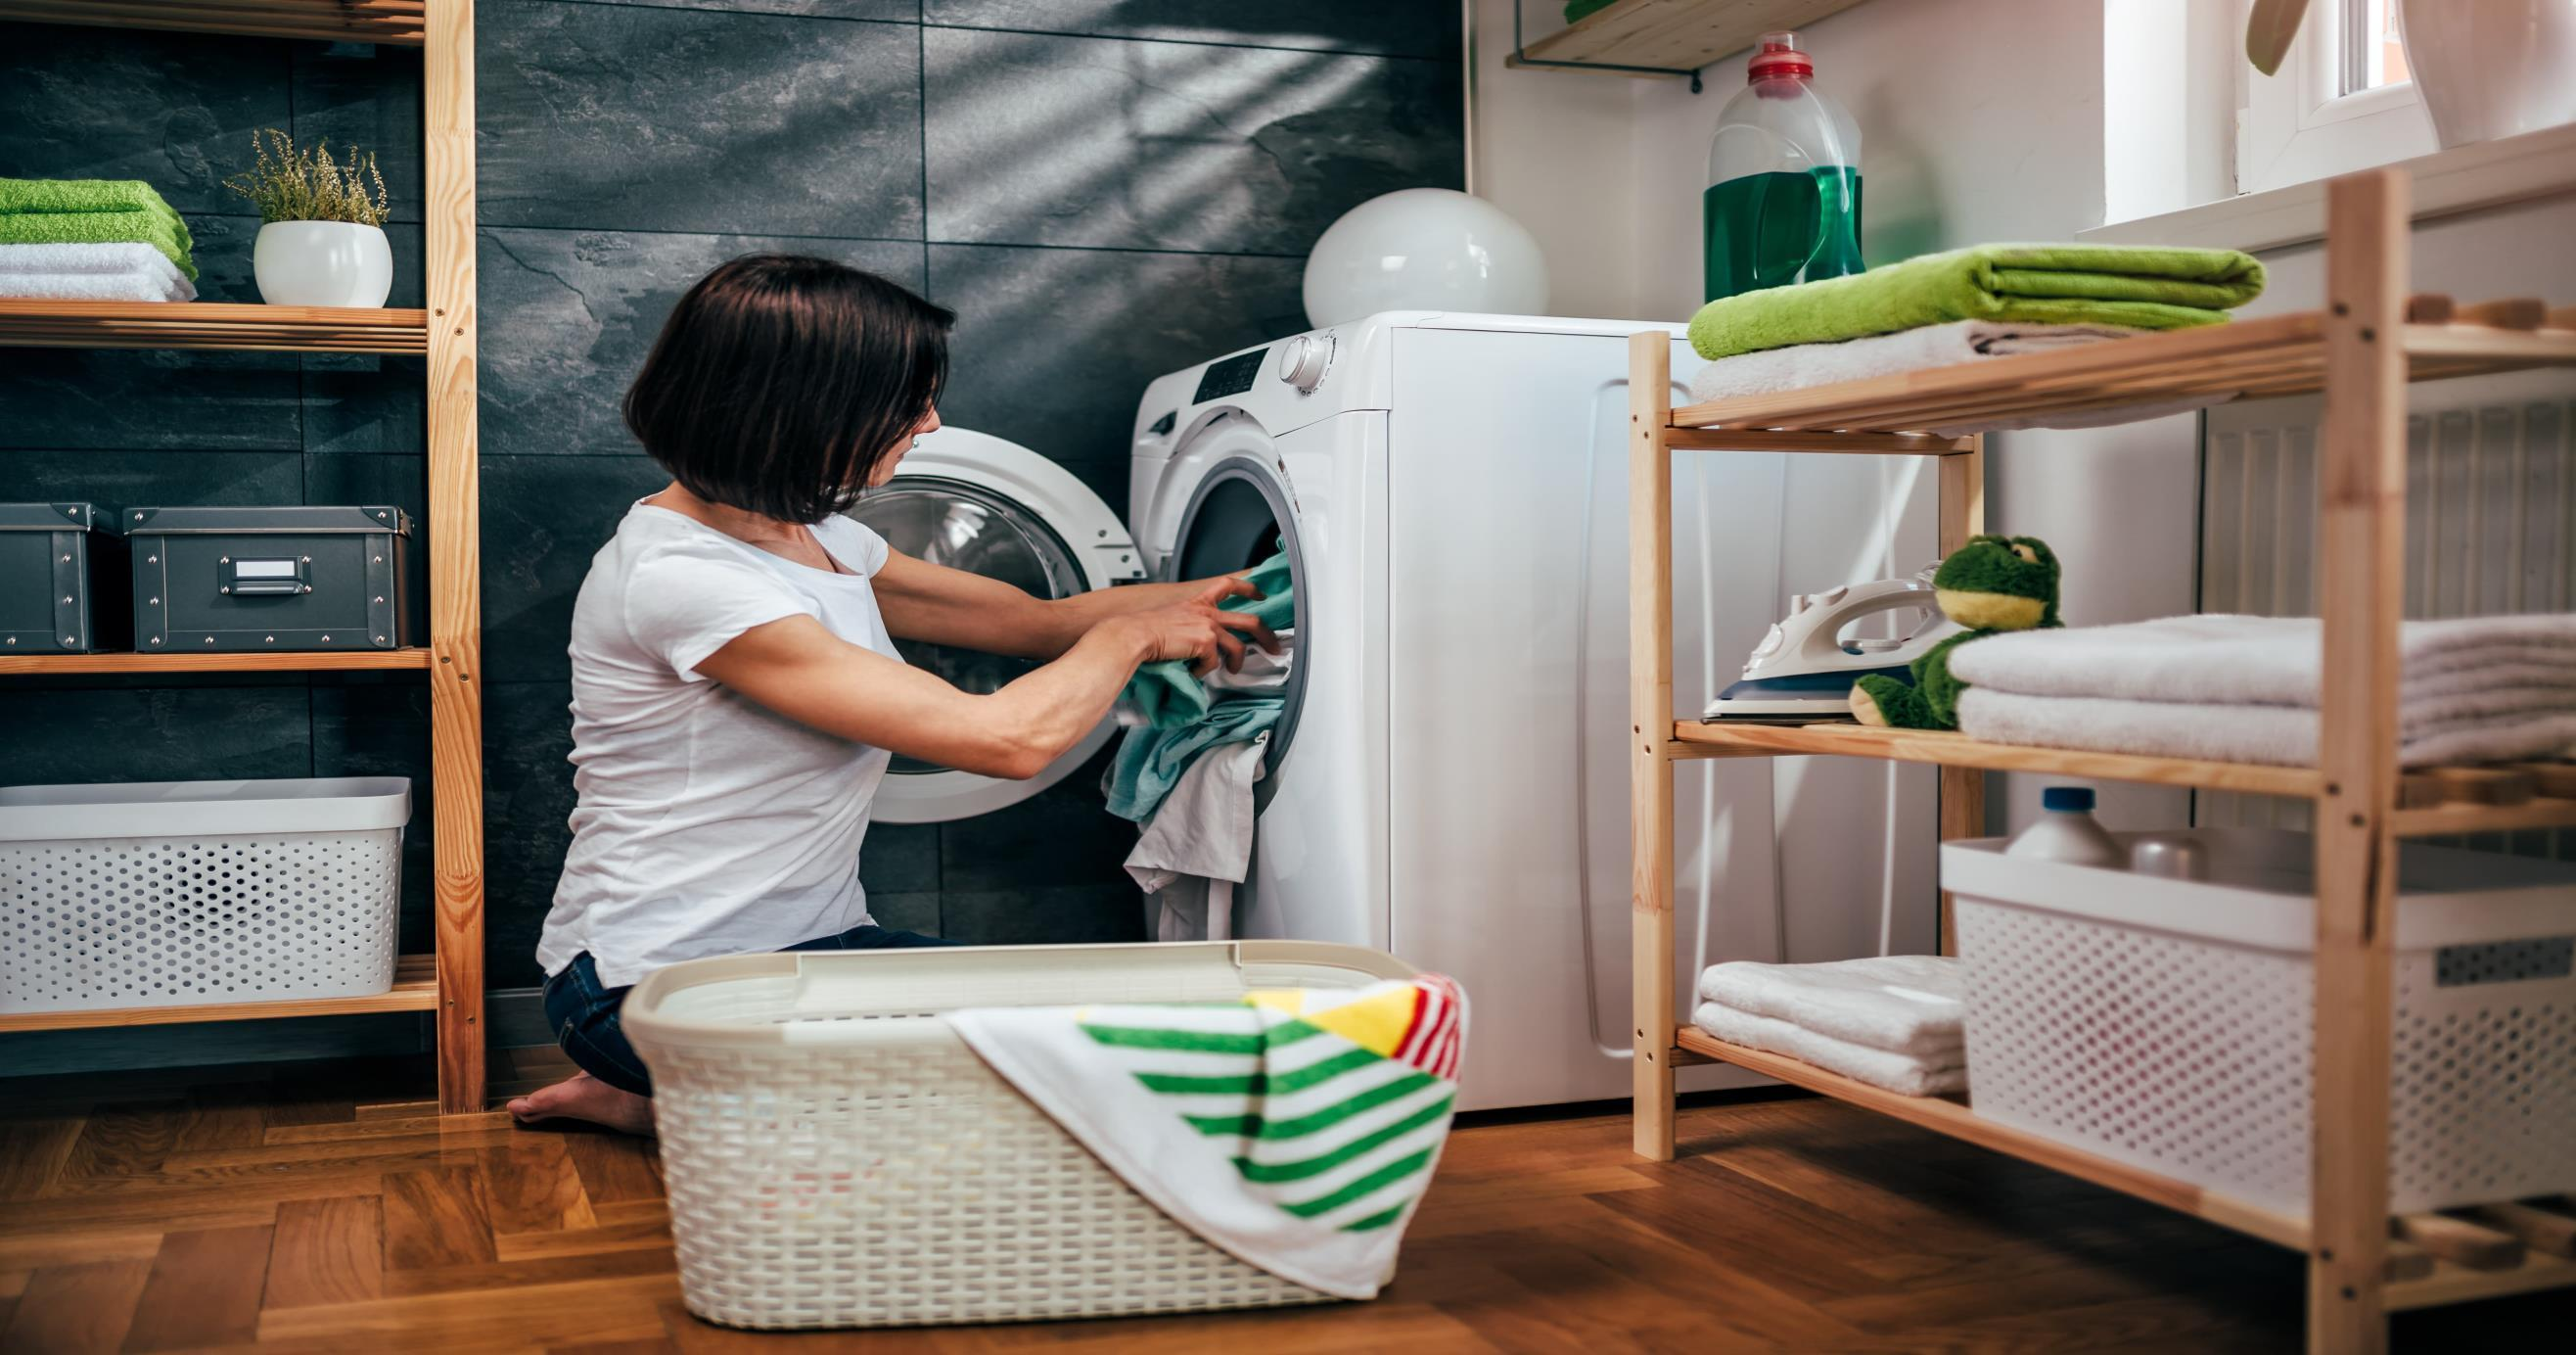 Common washer and dryer problems and how to fix them